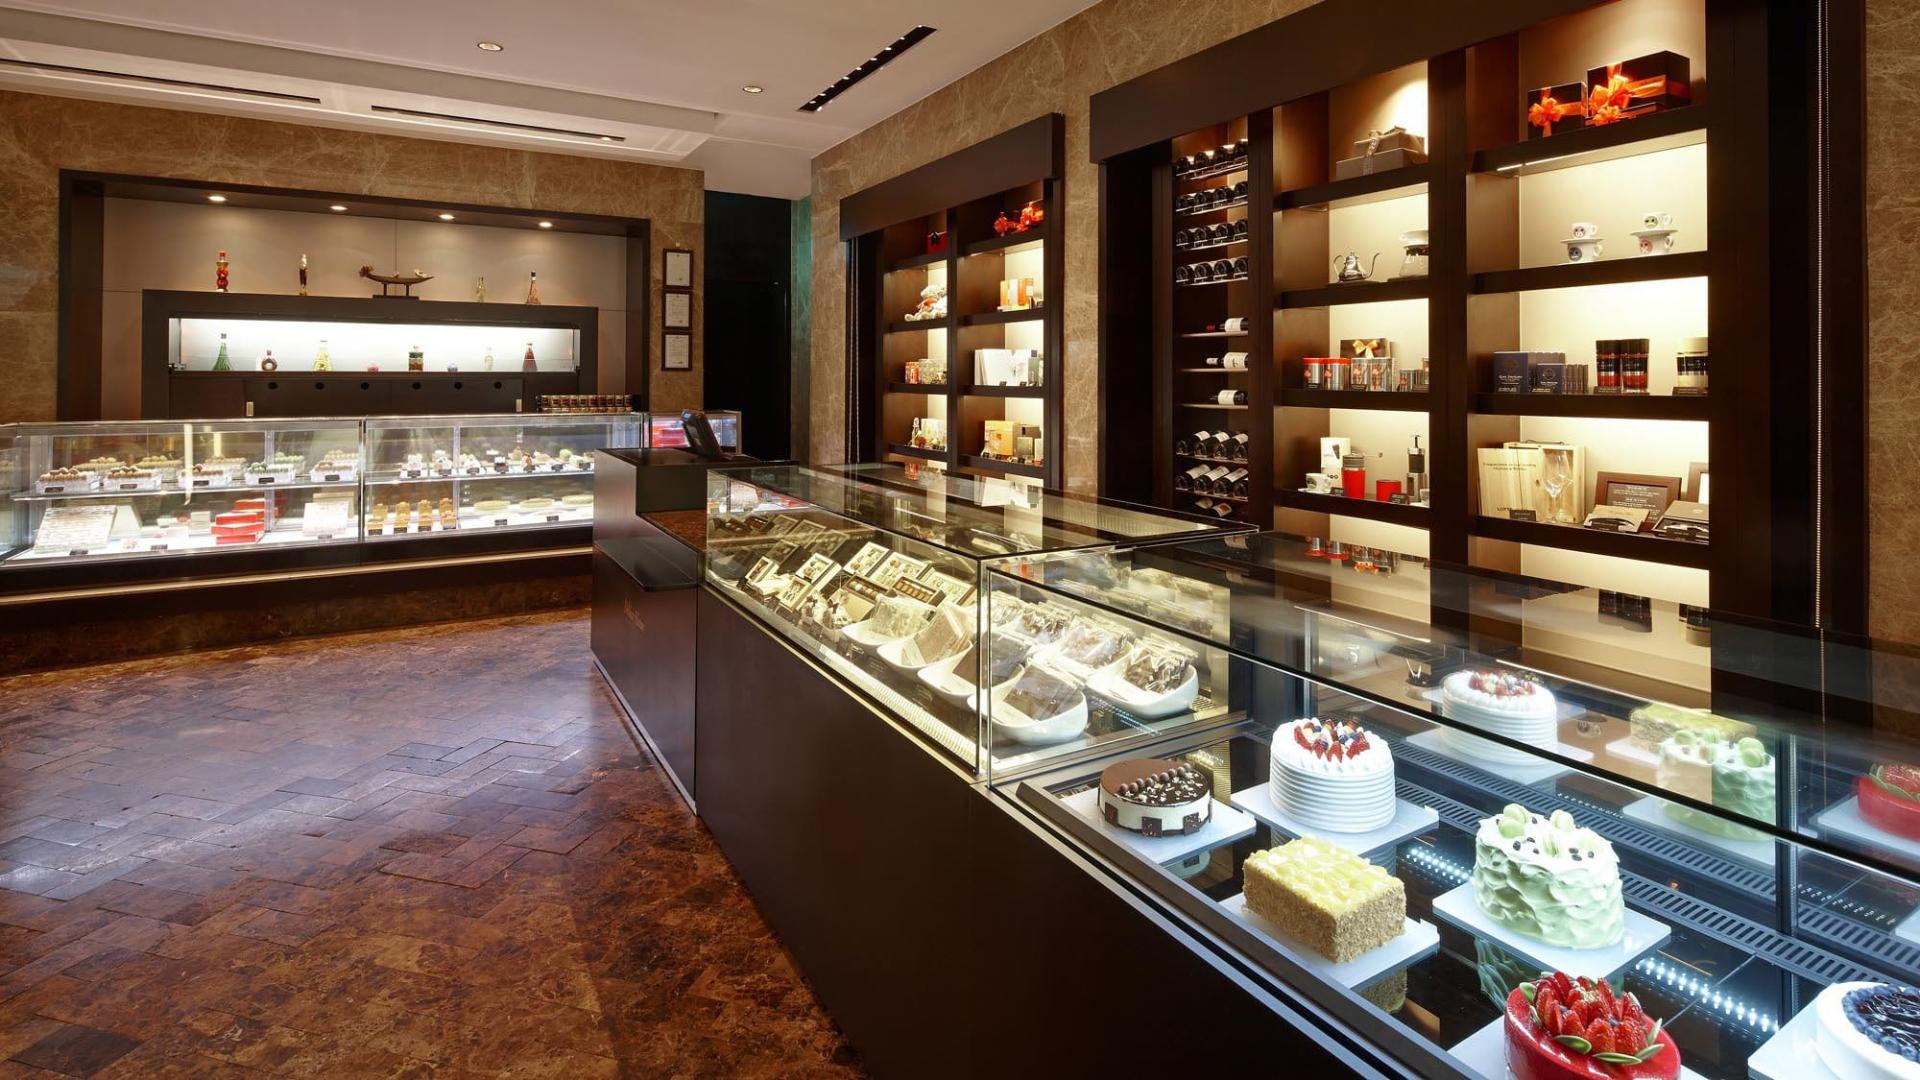 Lotte Hotel World-Dining-Bakery-Delica hans